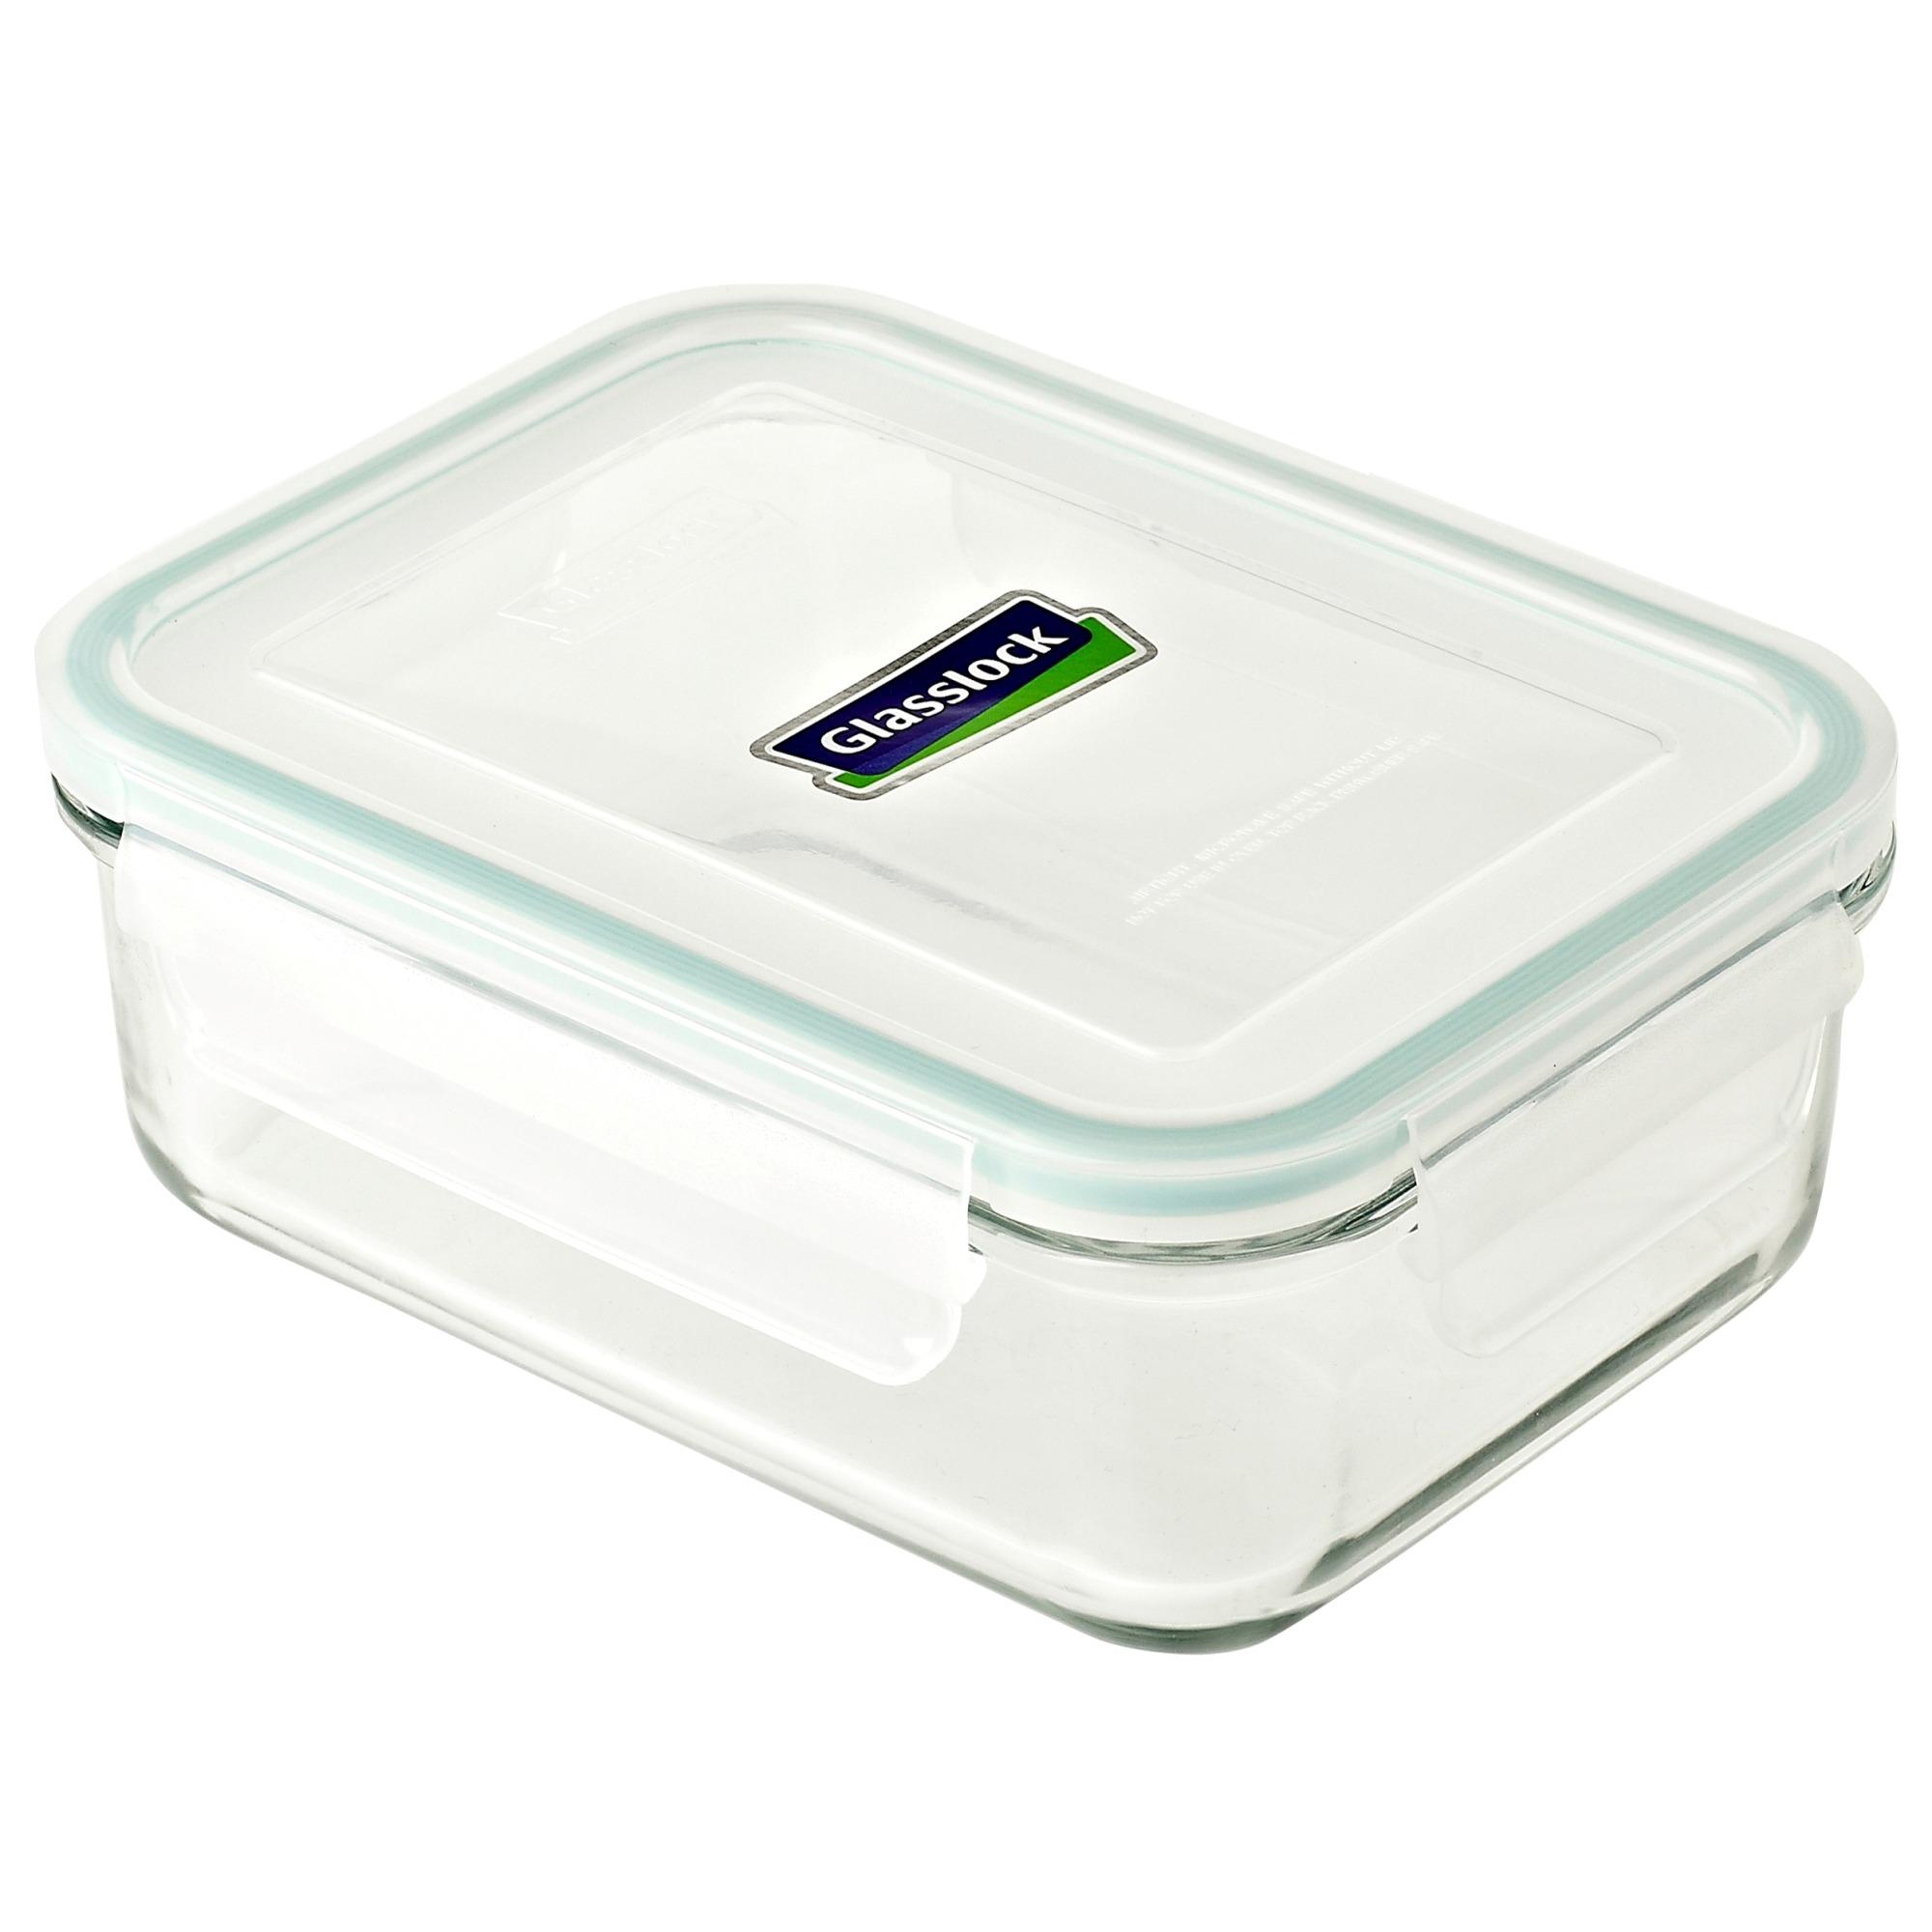 Travel Plastic Soap Box Dish Holder Container Storage Box With .